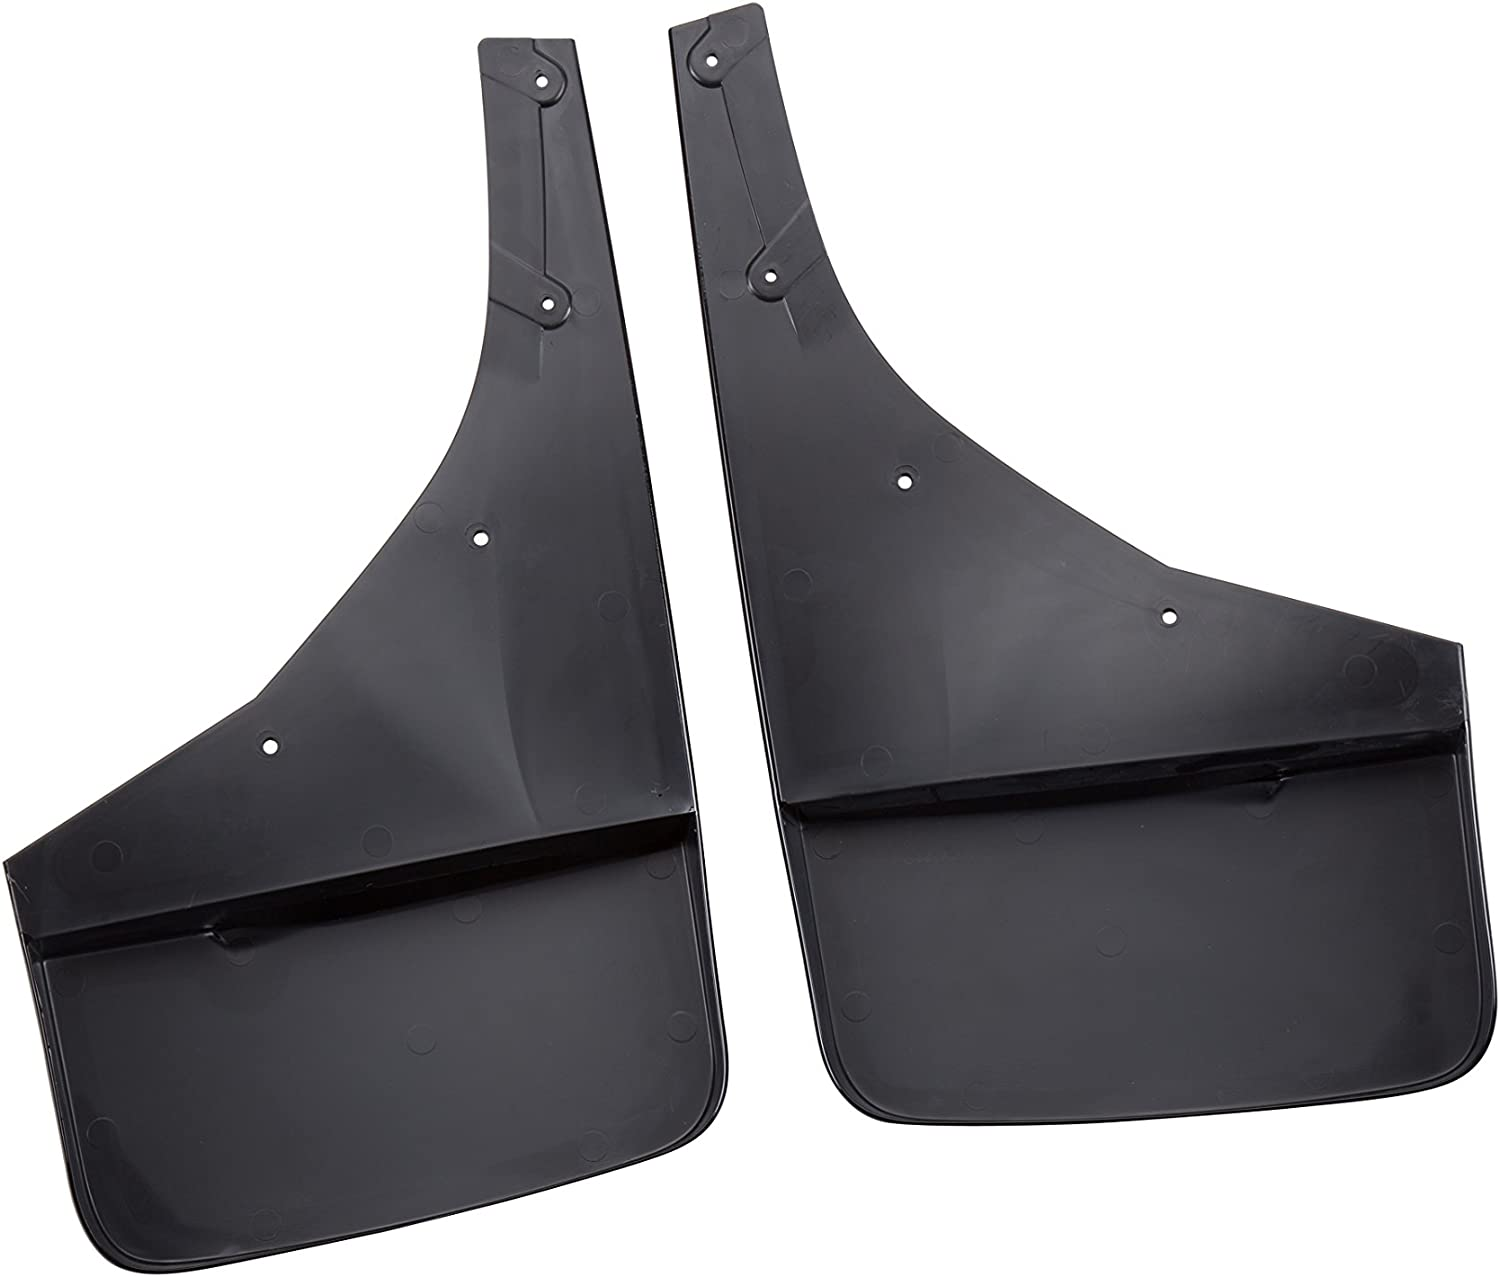 GM Accessories 22935639 Rear Molded Splash Guards in Black